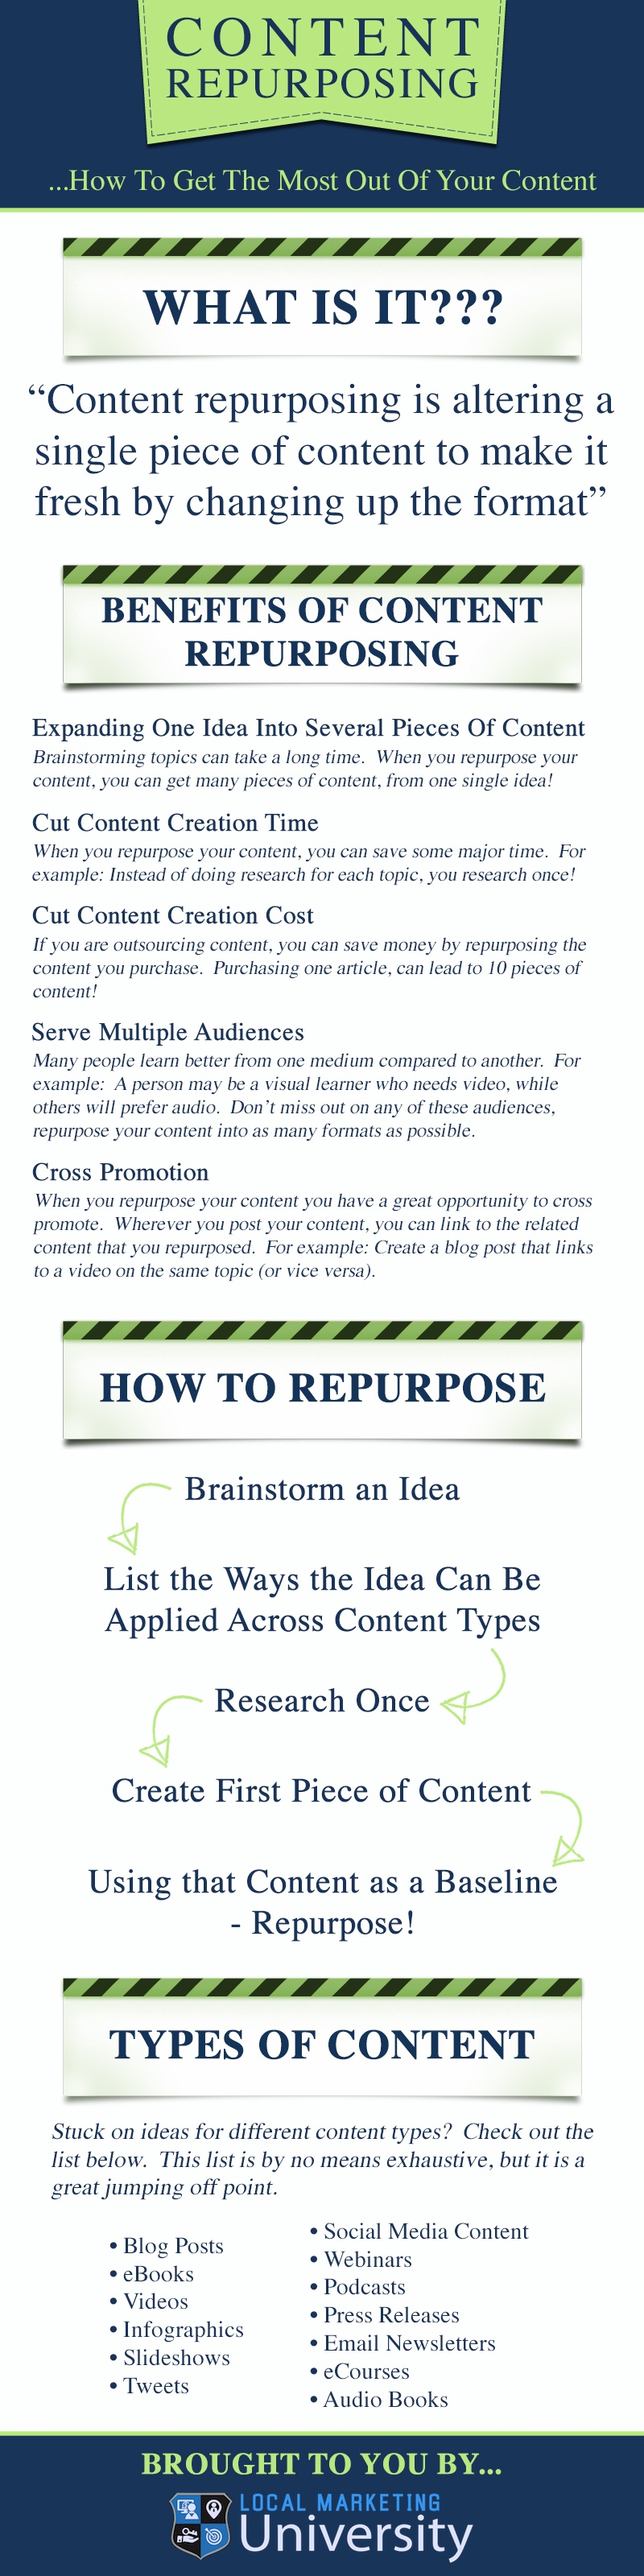 Content Repurposing - Infographic